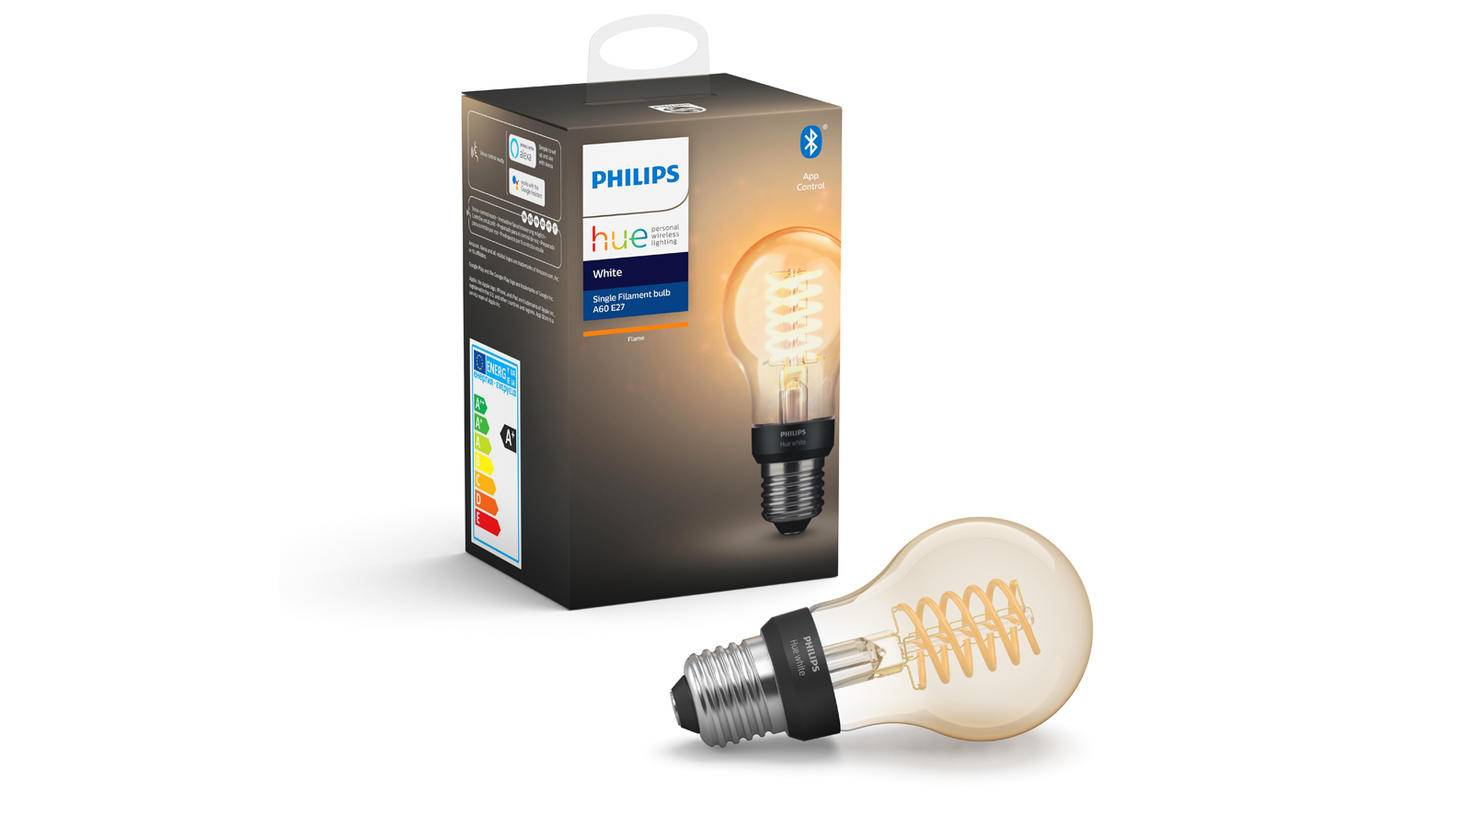 Philips hue-Filament Glühbirne-traditionelle Form-Signify